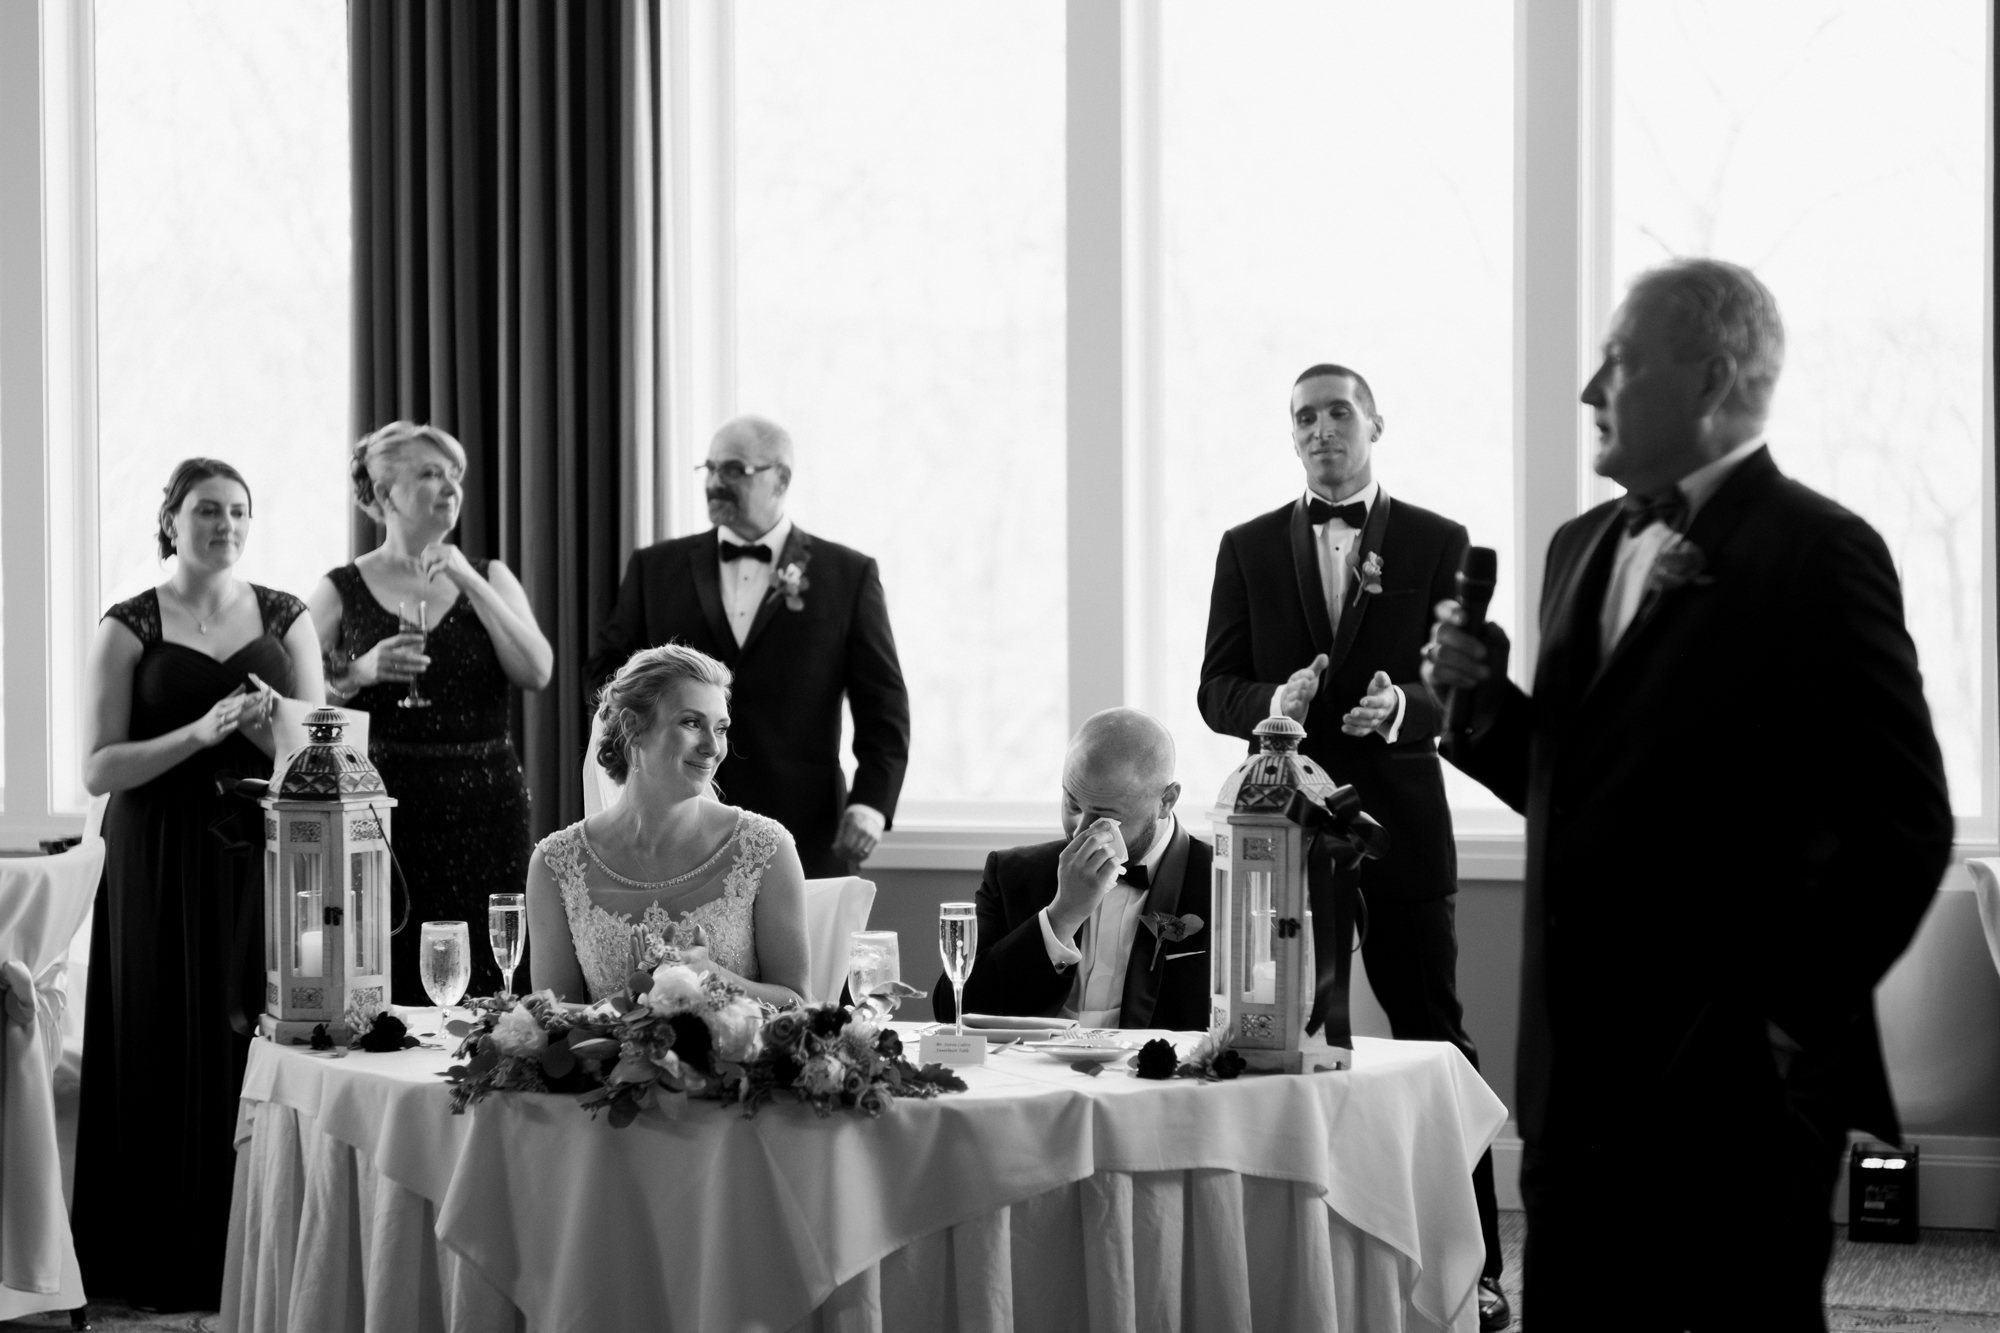 2018 Number 10 | Stephanie & Steve | Lake of Isles  Sony a9 | 85 f1.8  During an emotional toast by Stephanie's father, Steve broke down (along with many other people in the room). I dont' deliver many black and white photos in my collections, but in this case the faces of the people were too important, and the coloring of the image took away from that. A great toast, great photo, and great way to start this year's top 10.